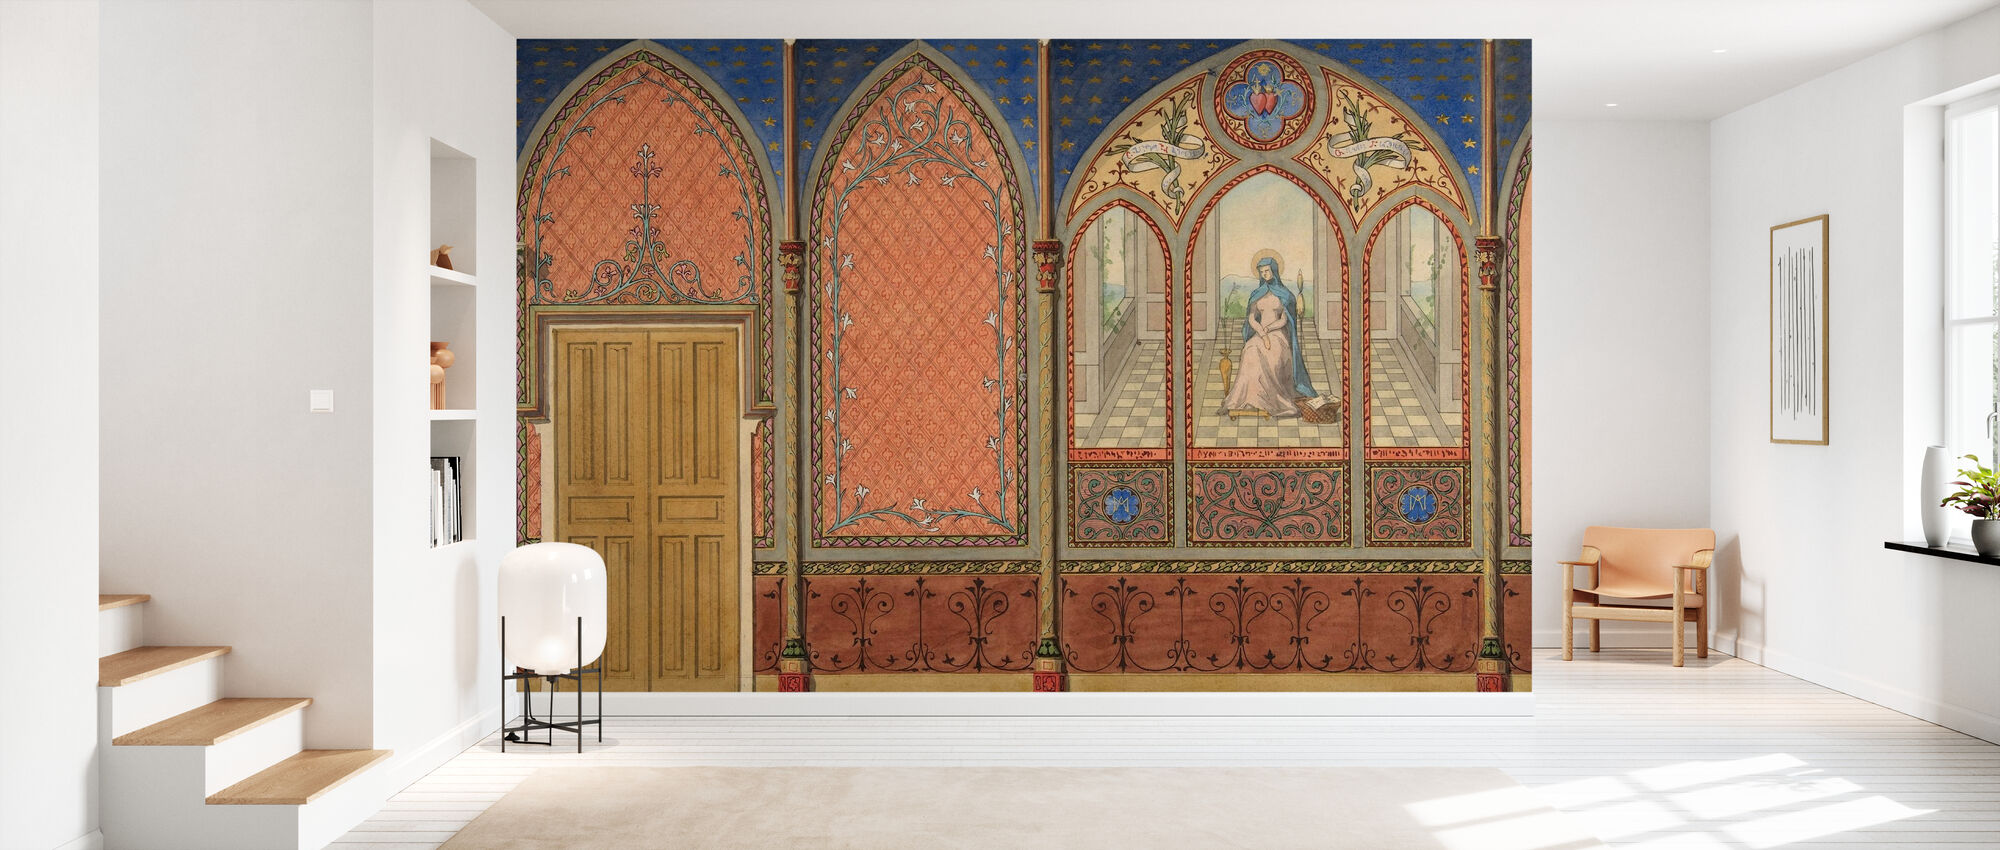 Elevation of a Church - Jules Edmond Charles Lachaise - Wallpaper - Hallway